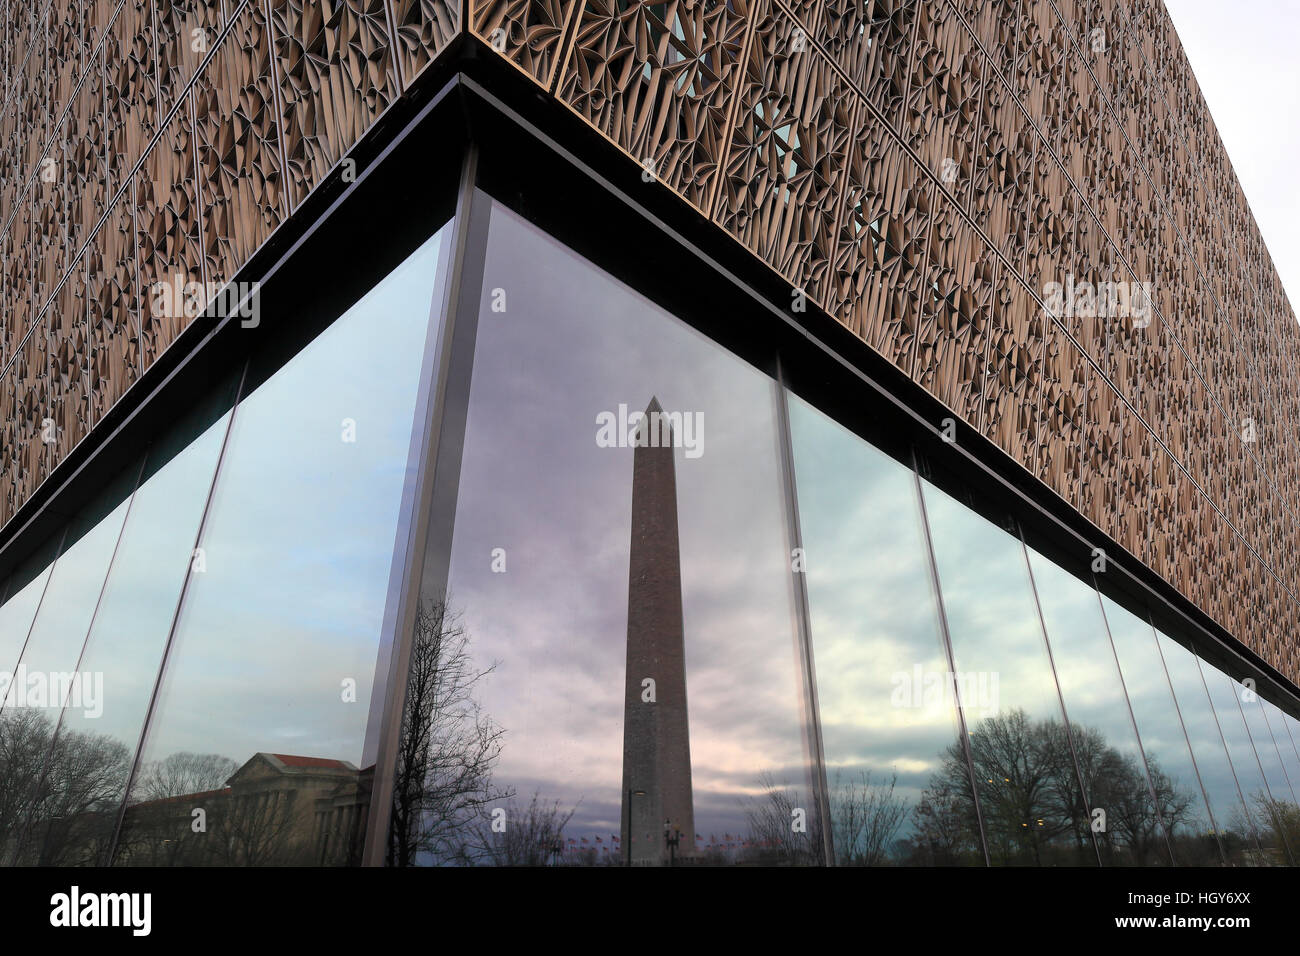 Washington Monument and National Museum of African American History and Culture Washington DC - Stock Image